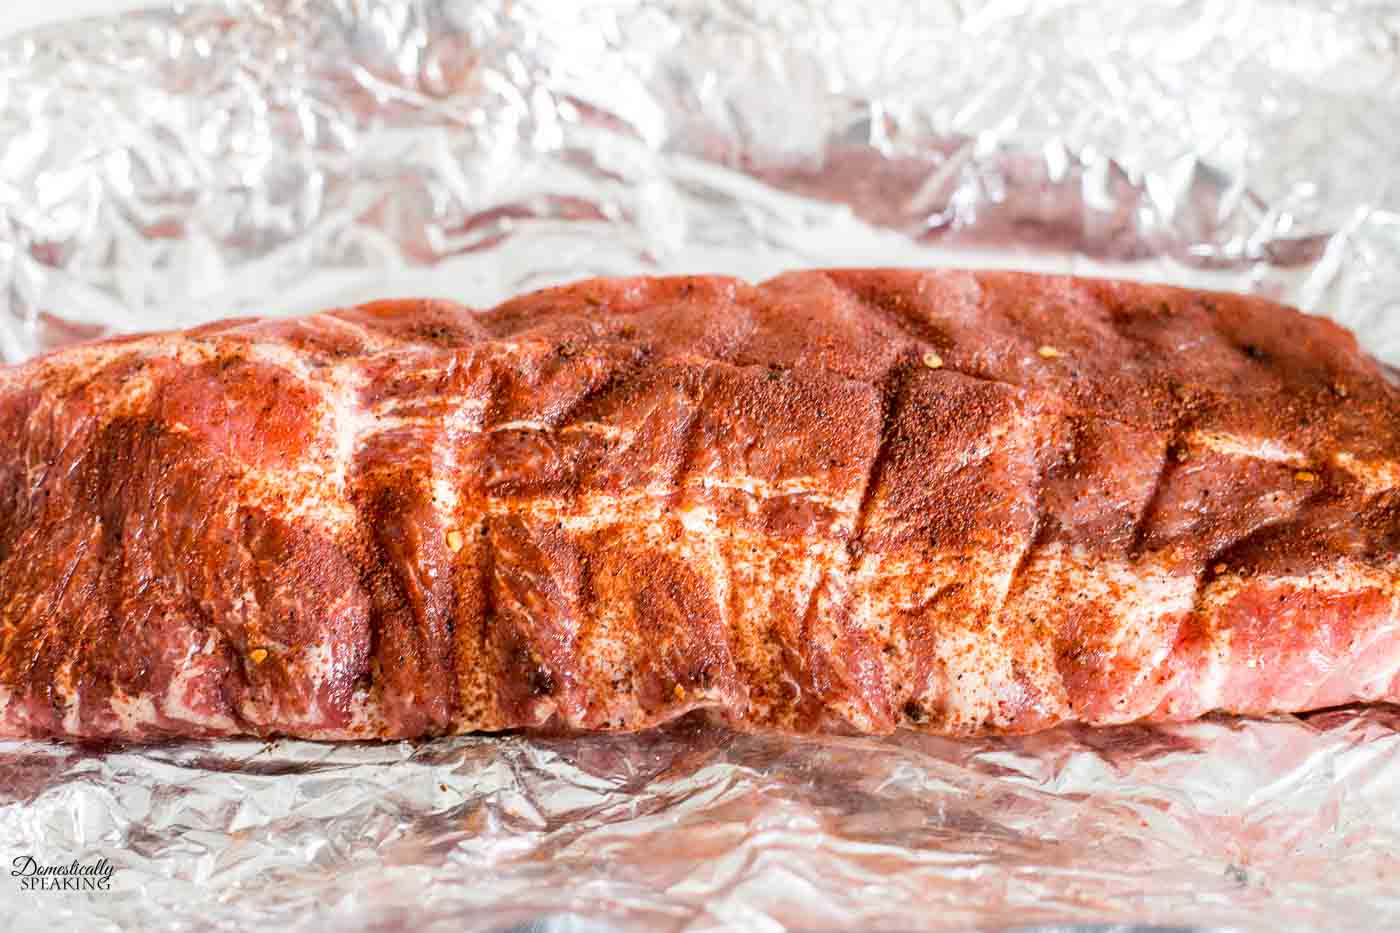 Baby Back Ribs after 12+ hours with Spicy Rub, ready for the pressure cooker.